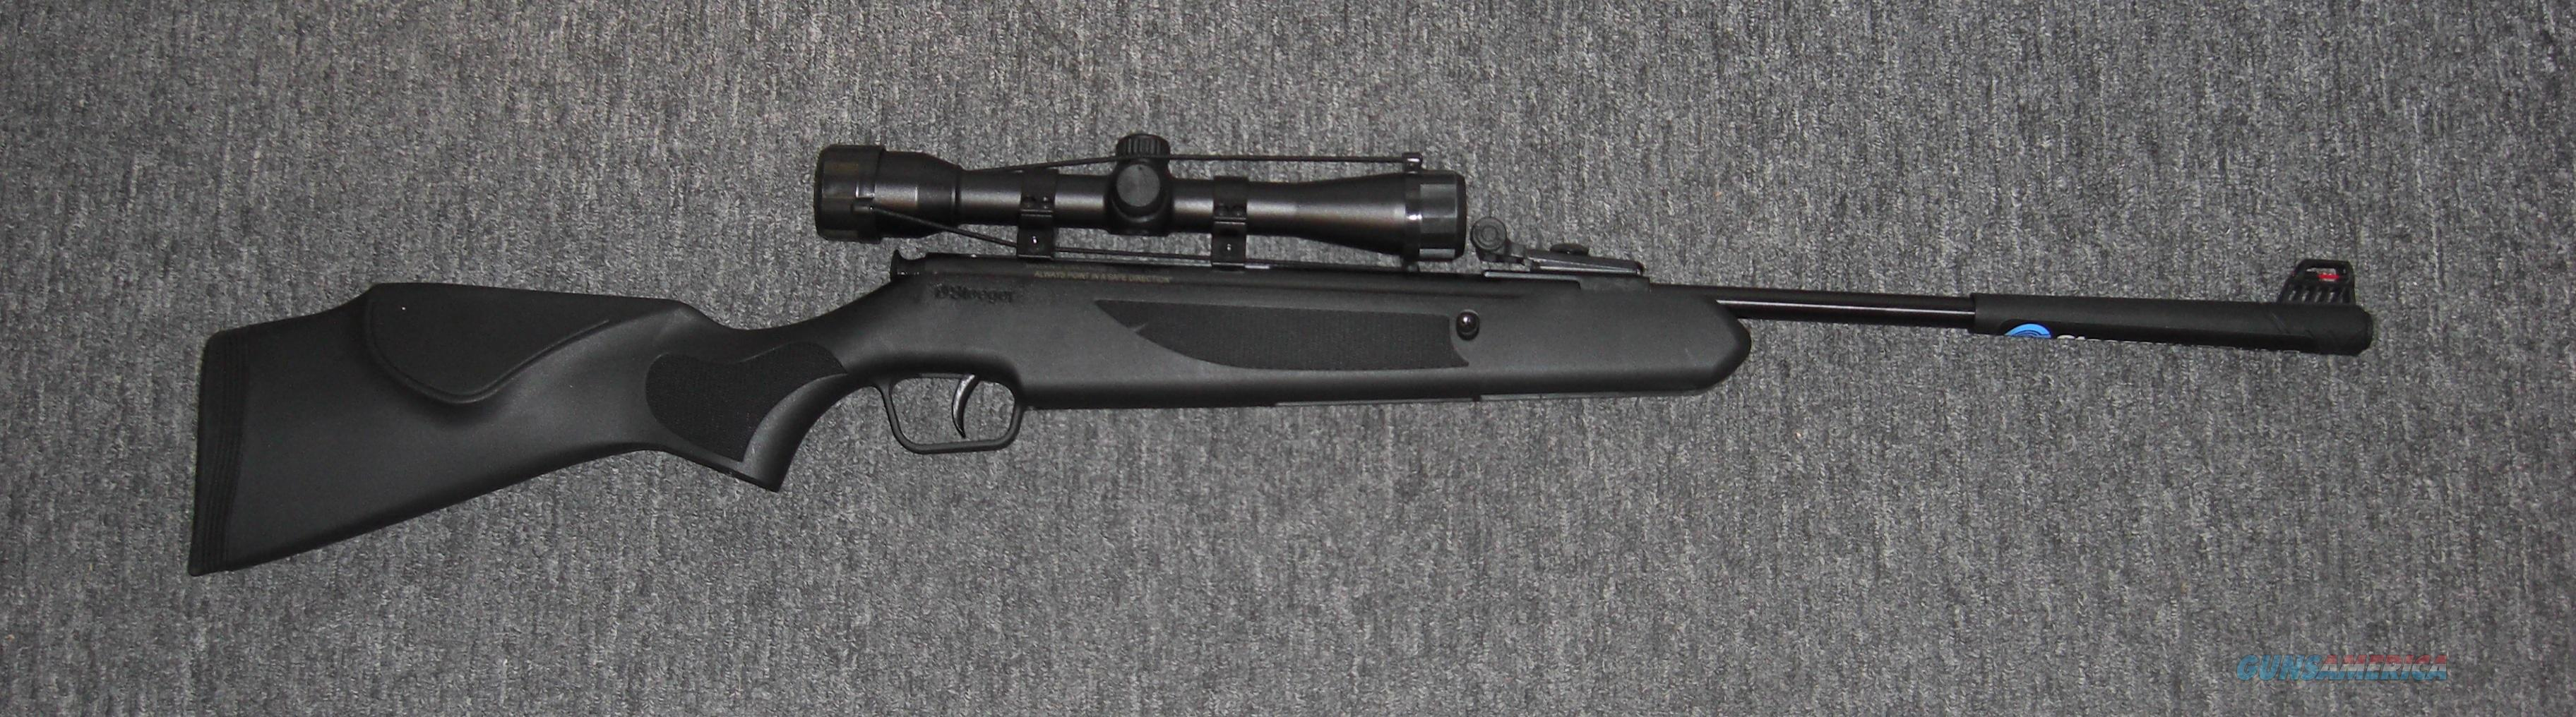 Stoeger X5 w/4x32 scope (30006)  Non-Guns > Air Rifles - Pistols > Adult High Velocity